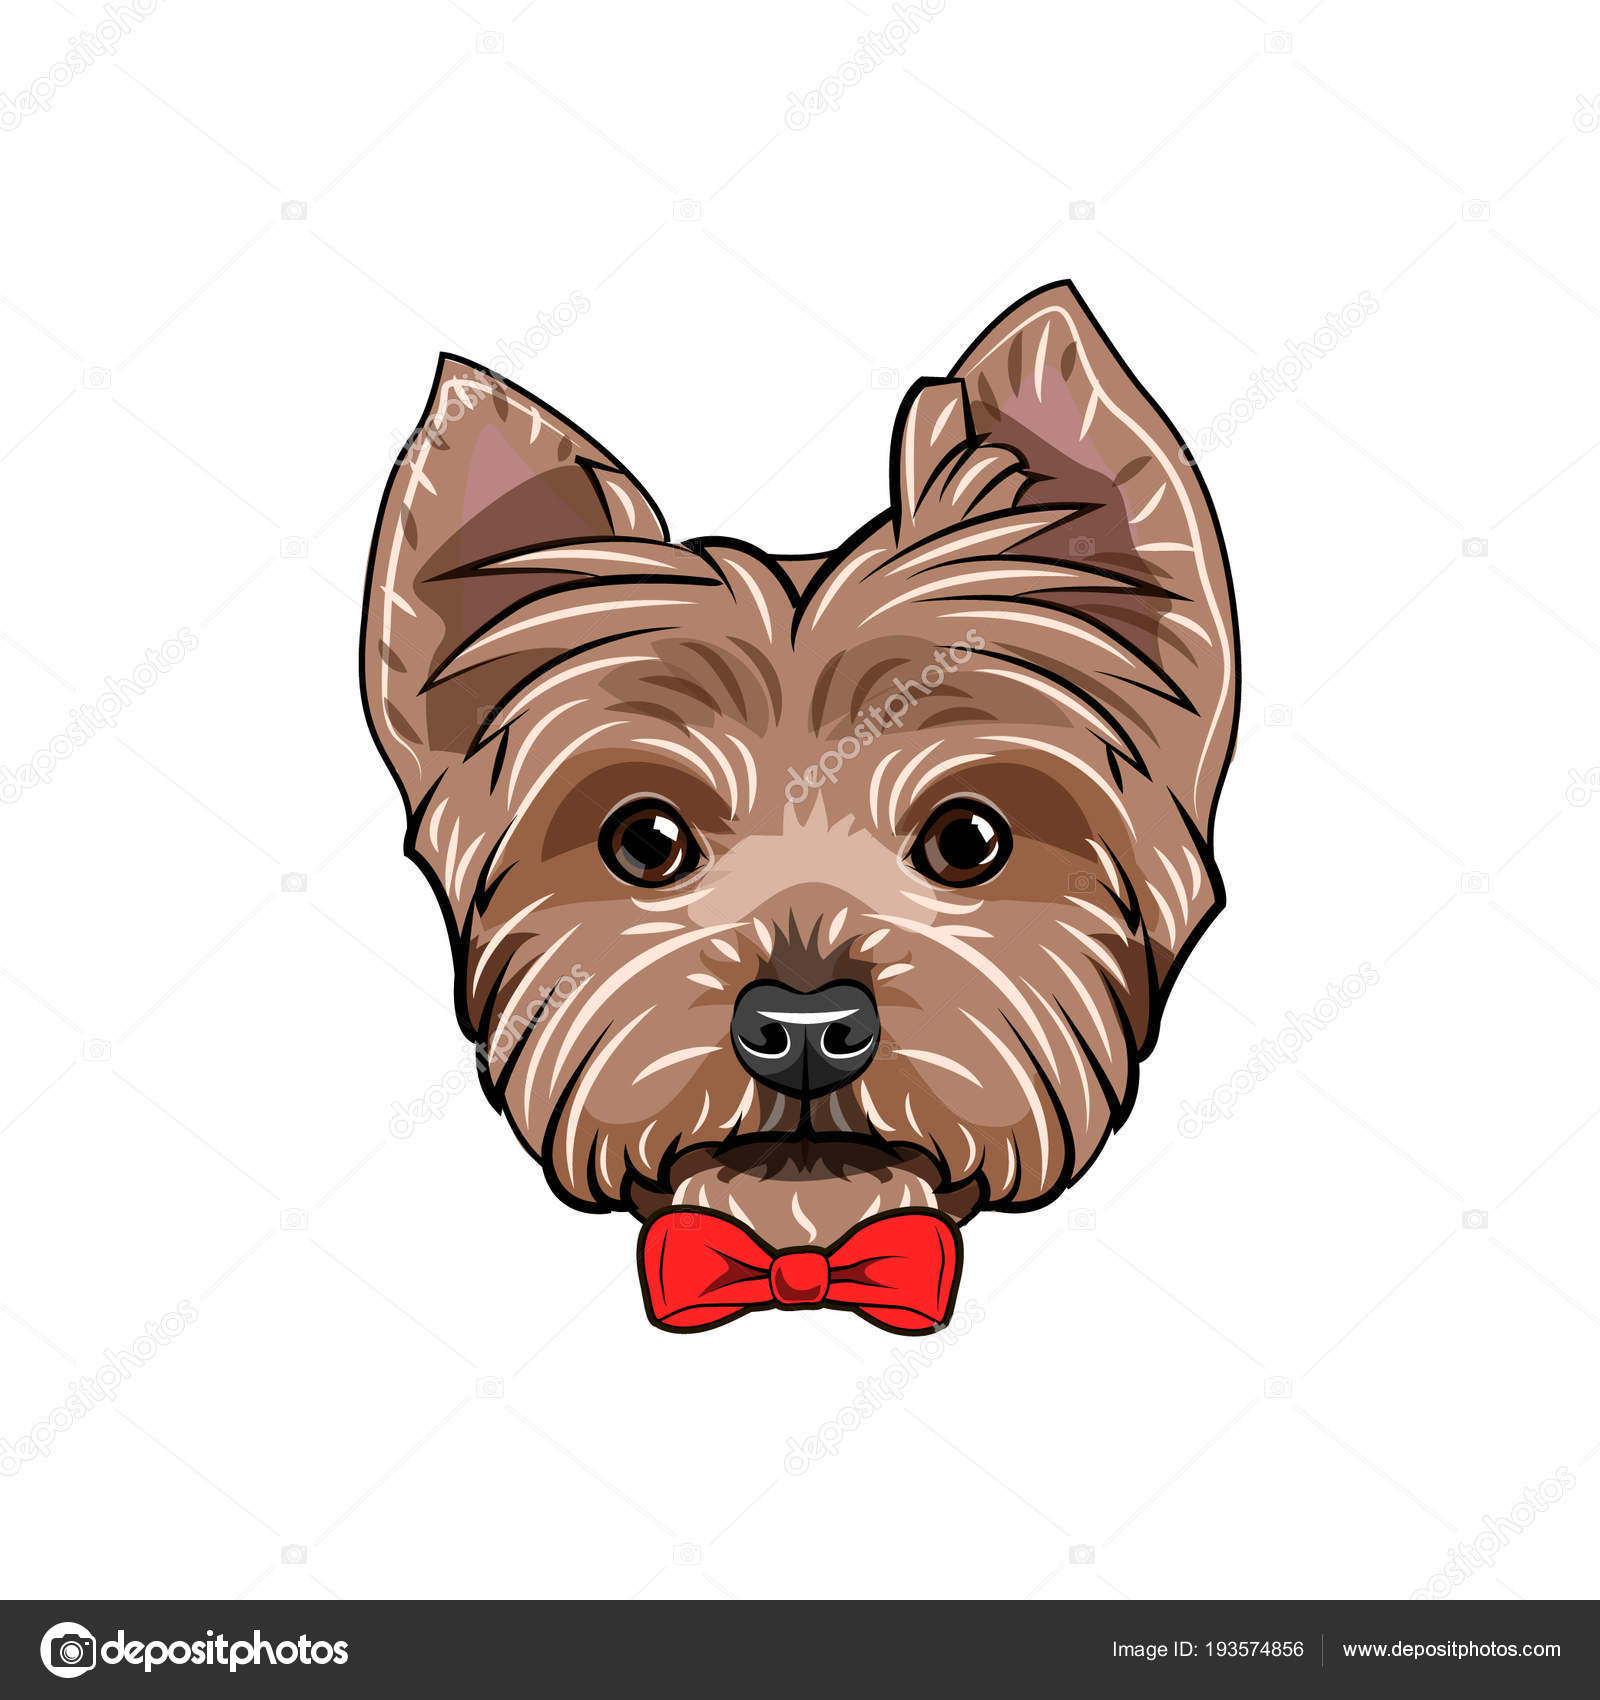 Must see Terrier Bow Adorable Dog - depositphotos_193574856-stock-illustration-yorkshire-terrier-dog-red-bow  You Should Have_784257  .jpg